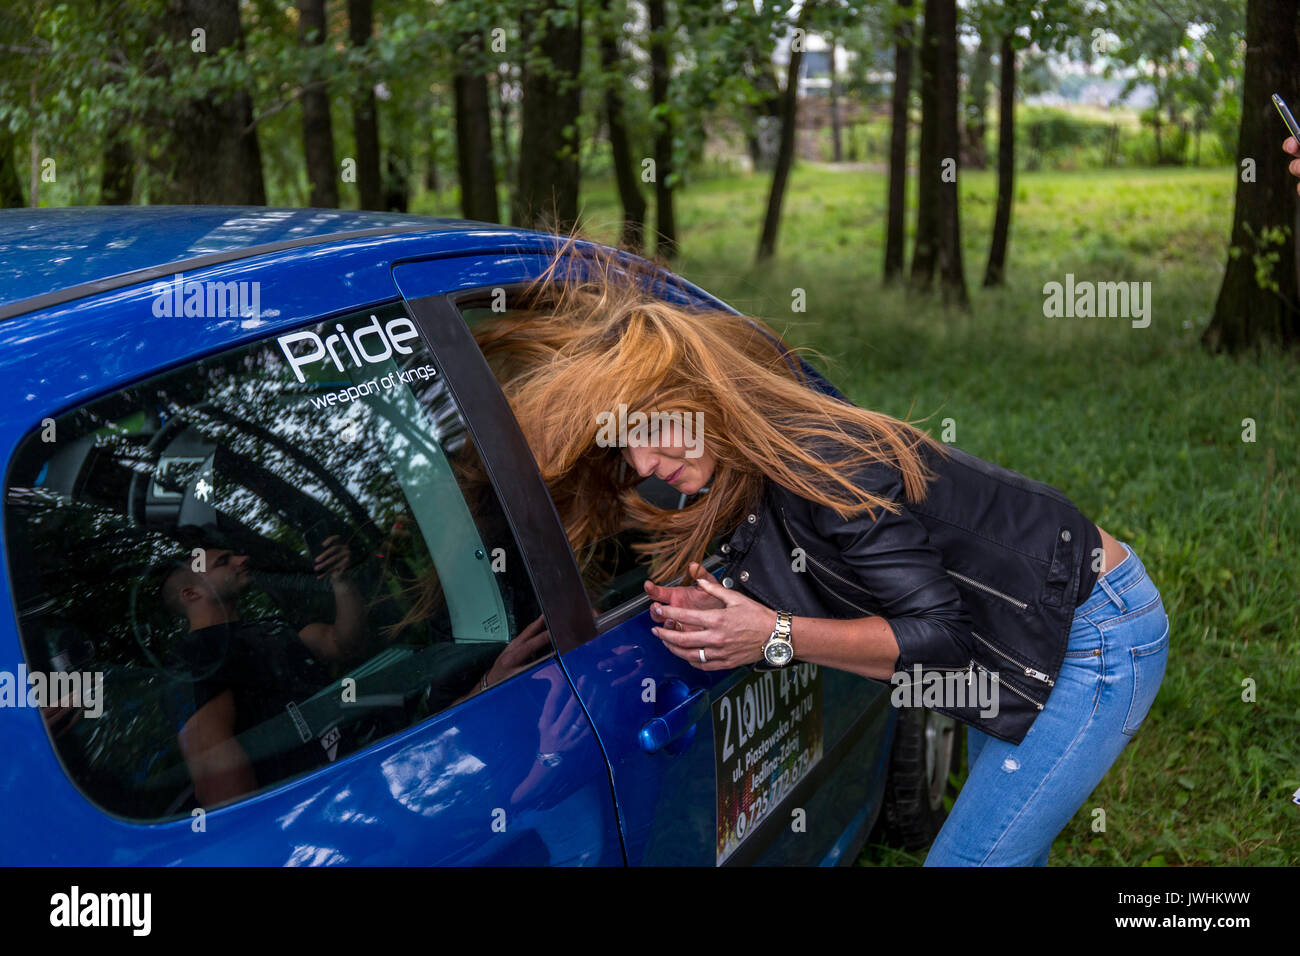 Bielsko-Biala, Poland. 12th Aug, 2017. International automotive trade fairs - MotoShow Bielsko-Biala. Woman's hair flying under the effect of car's bass. Credit: Lukasz Obermann/Alamy Live News - Stock Image